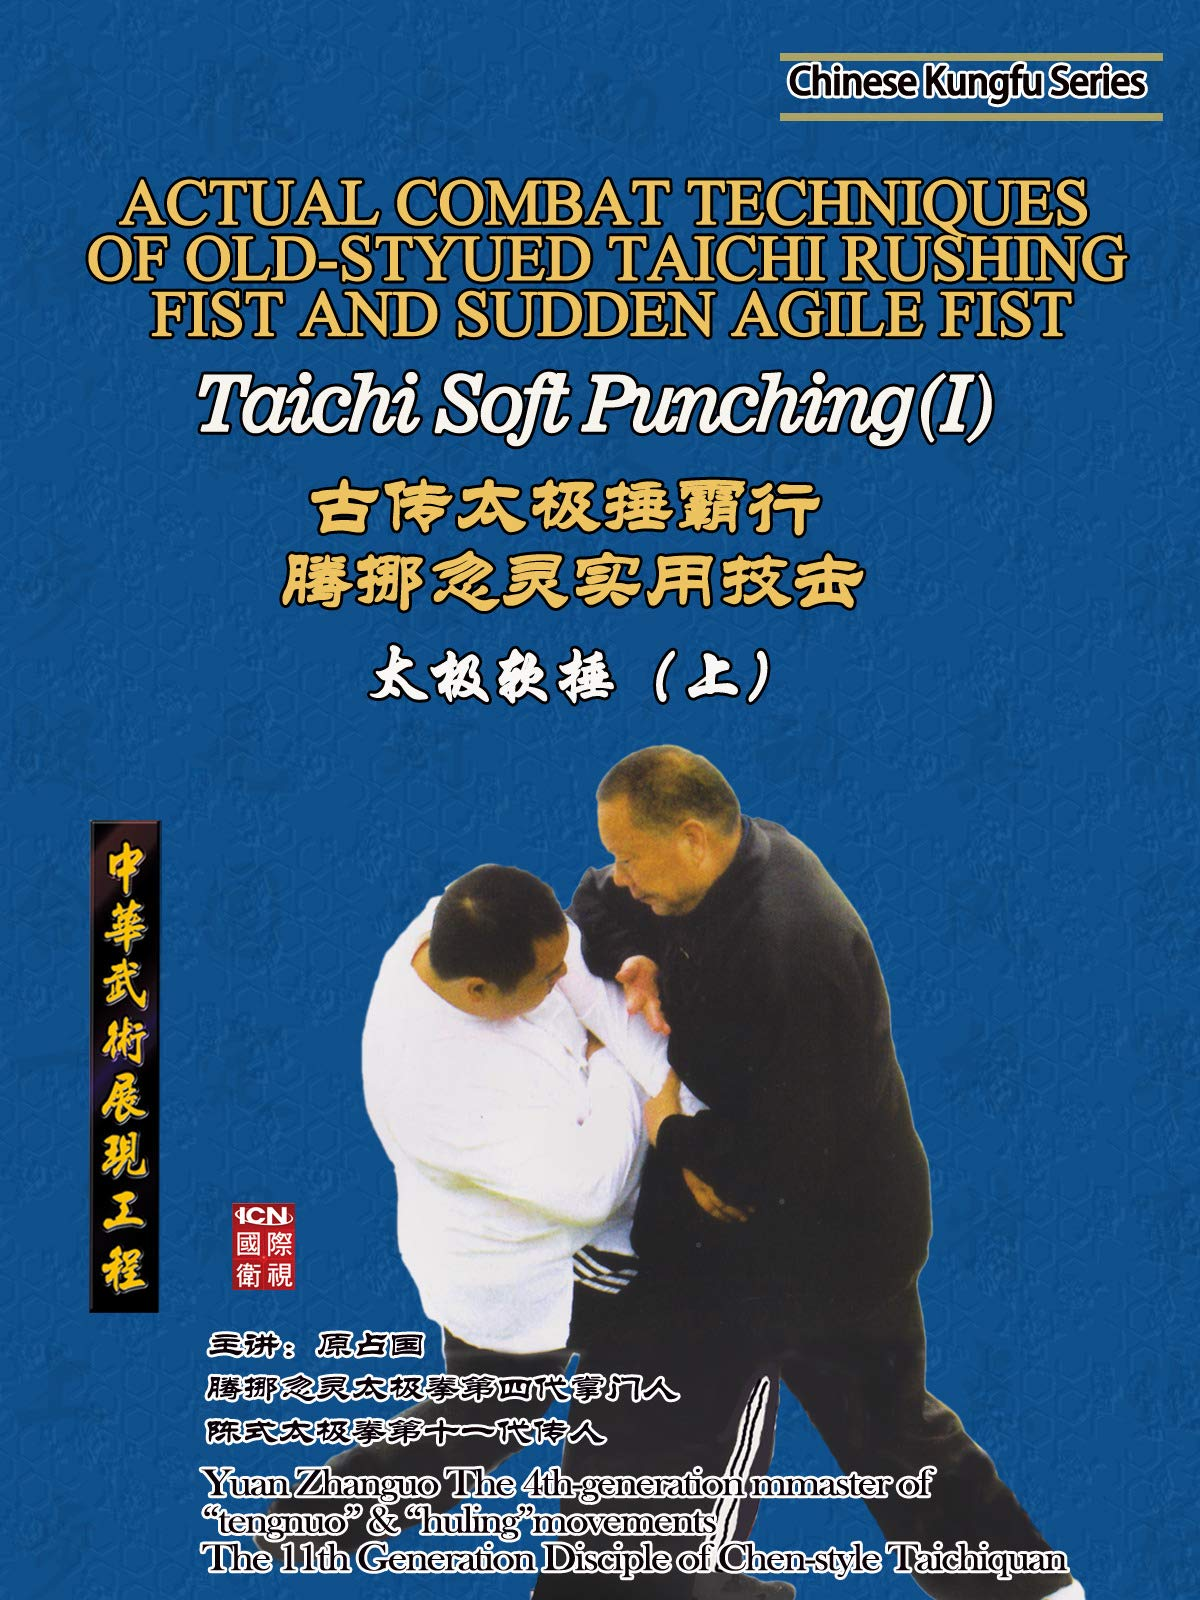 Actual combat techniques of old-styued Taichi rushing fist and sudden agile fist Taichi Soft Punching(I)